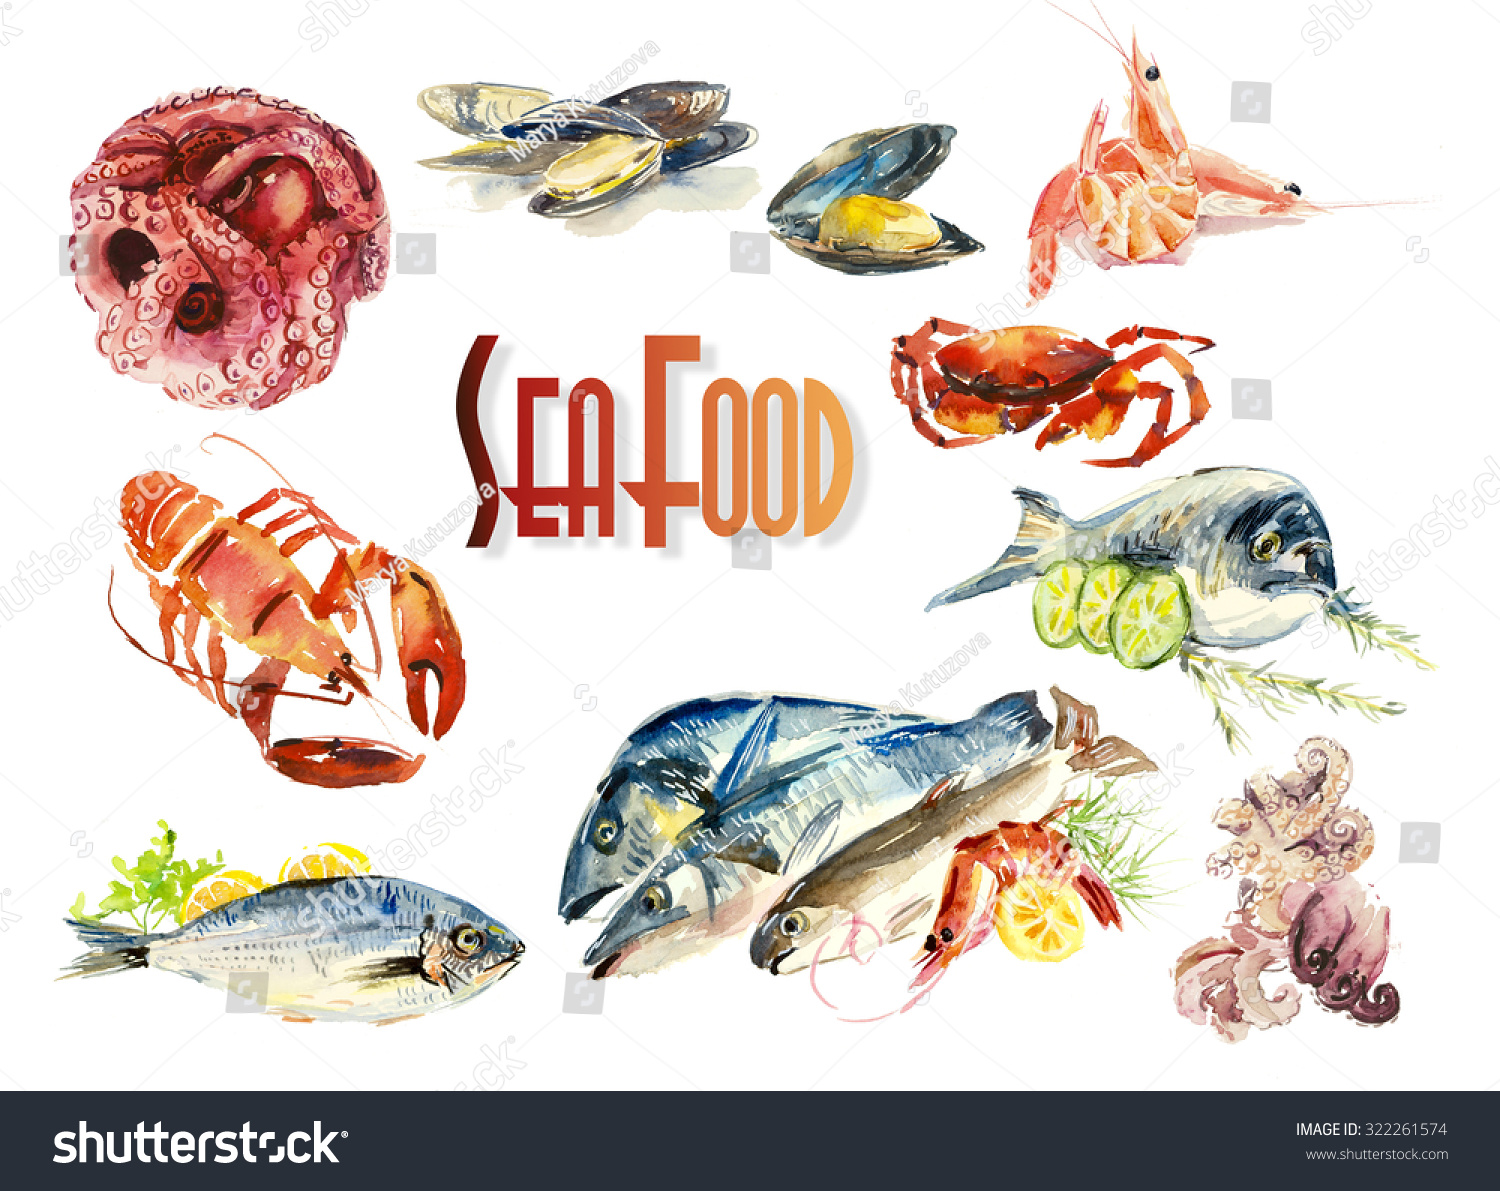 Fish and seafood menu different compositions watercolor for Fish and seafood